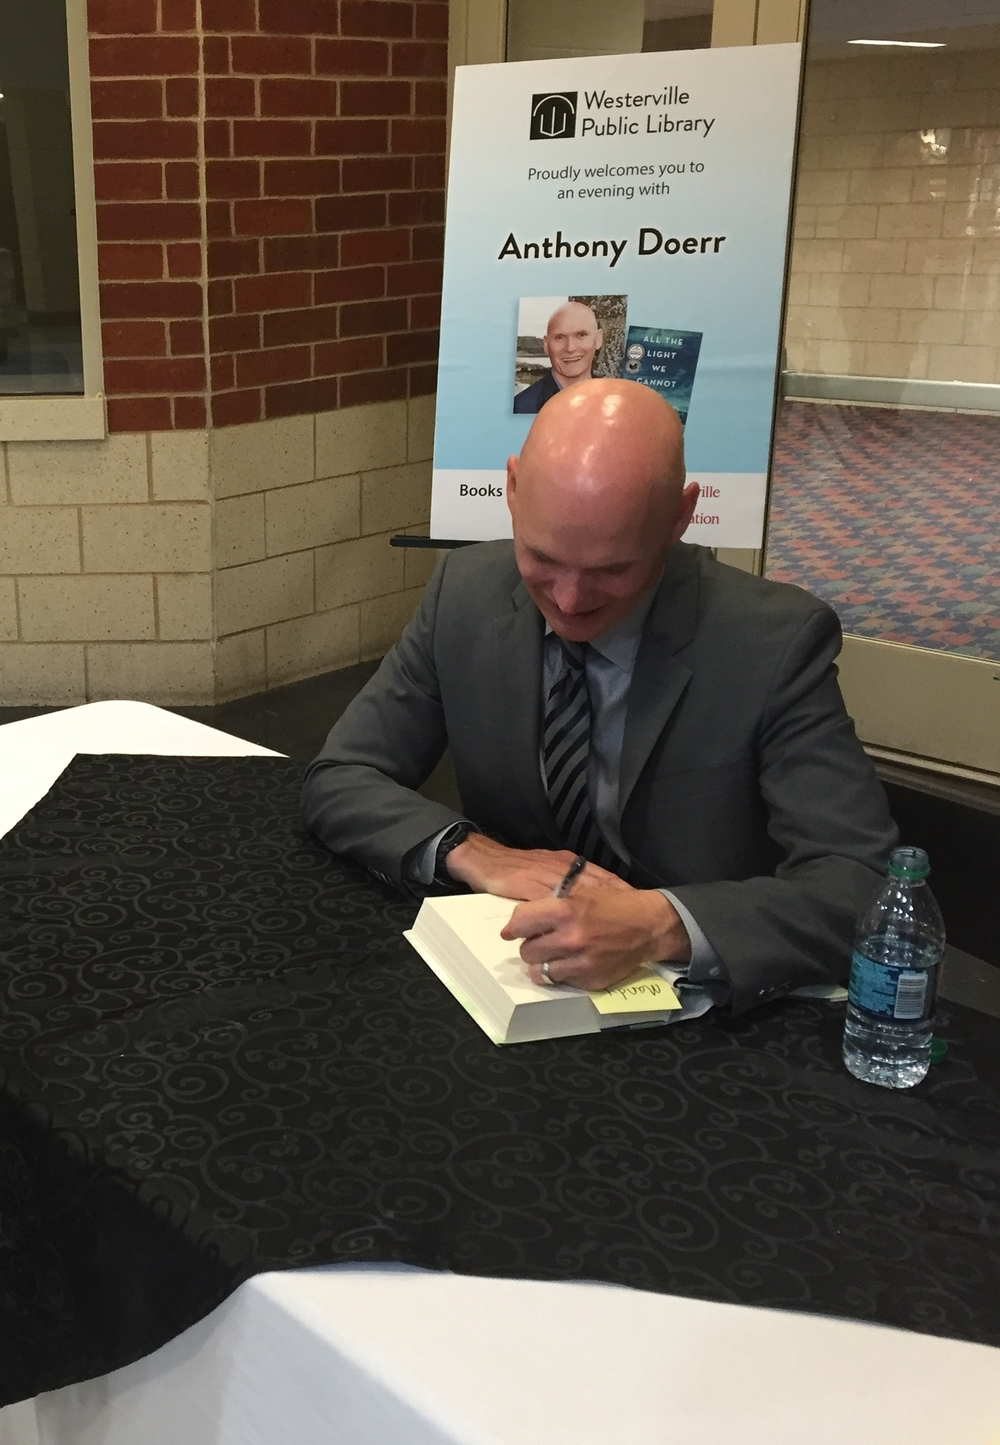 Anthony Doerr signing my copy of All the Light We Cannot See! Be still, my bookish heart.